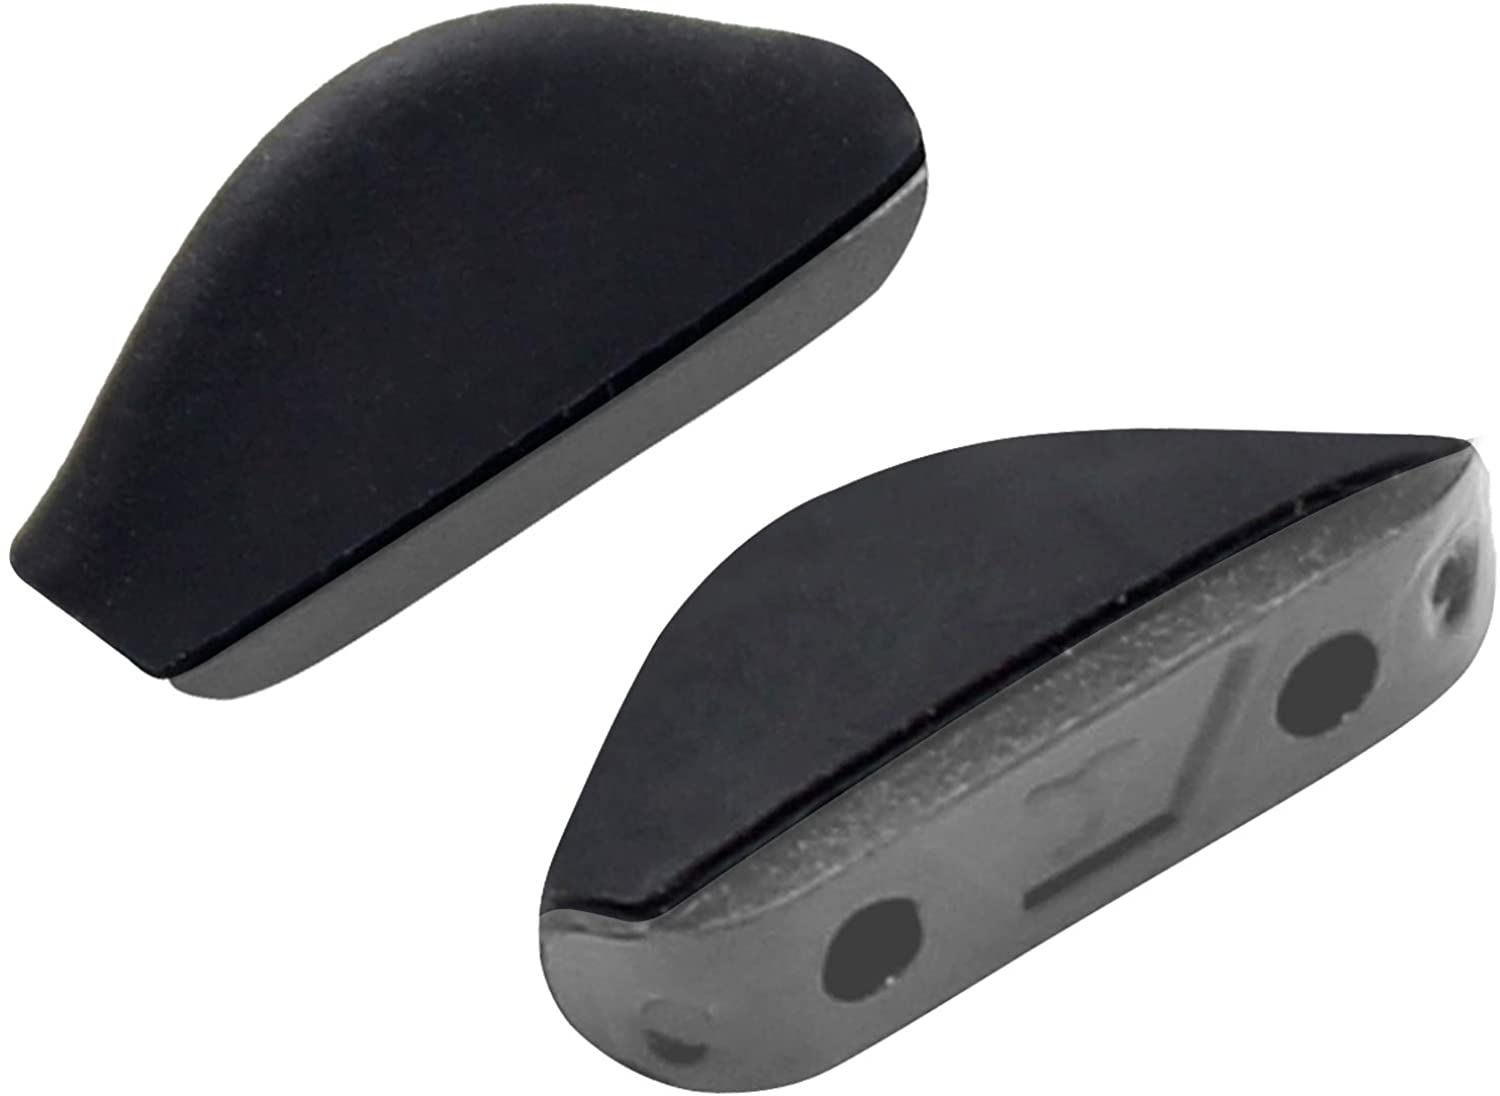 Nose Pads for Oakley Turbine OO9263 Sunglasses